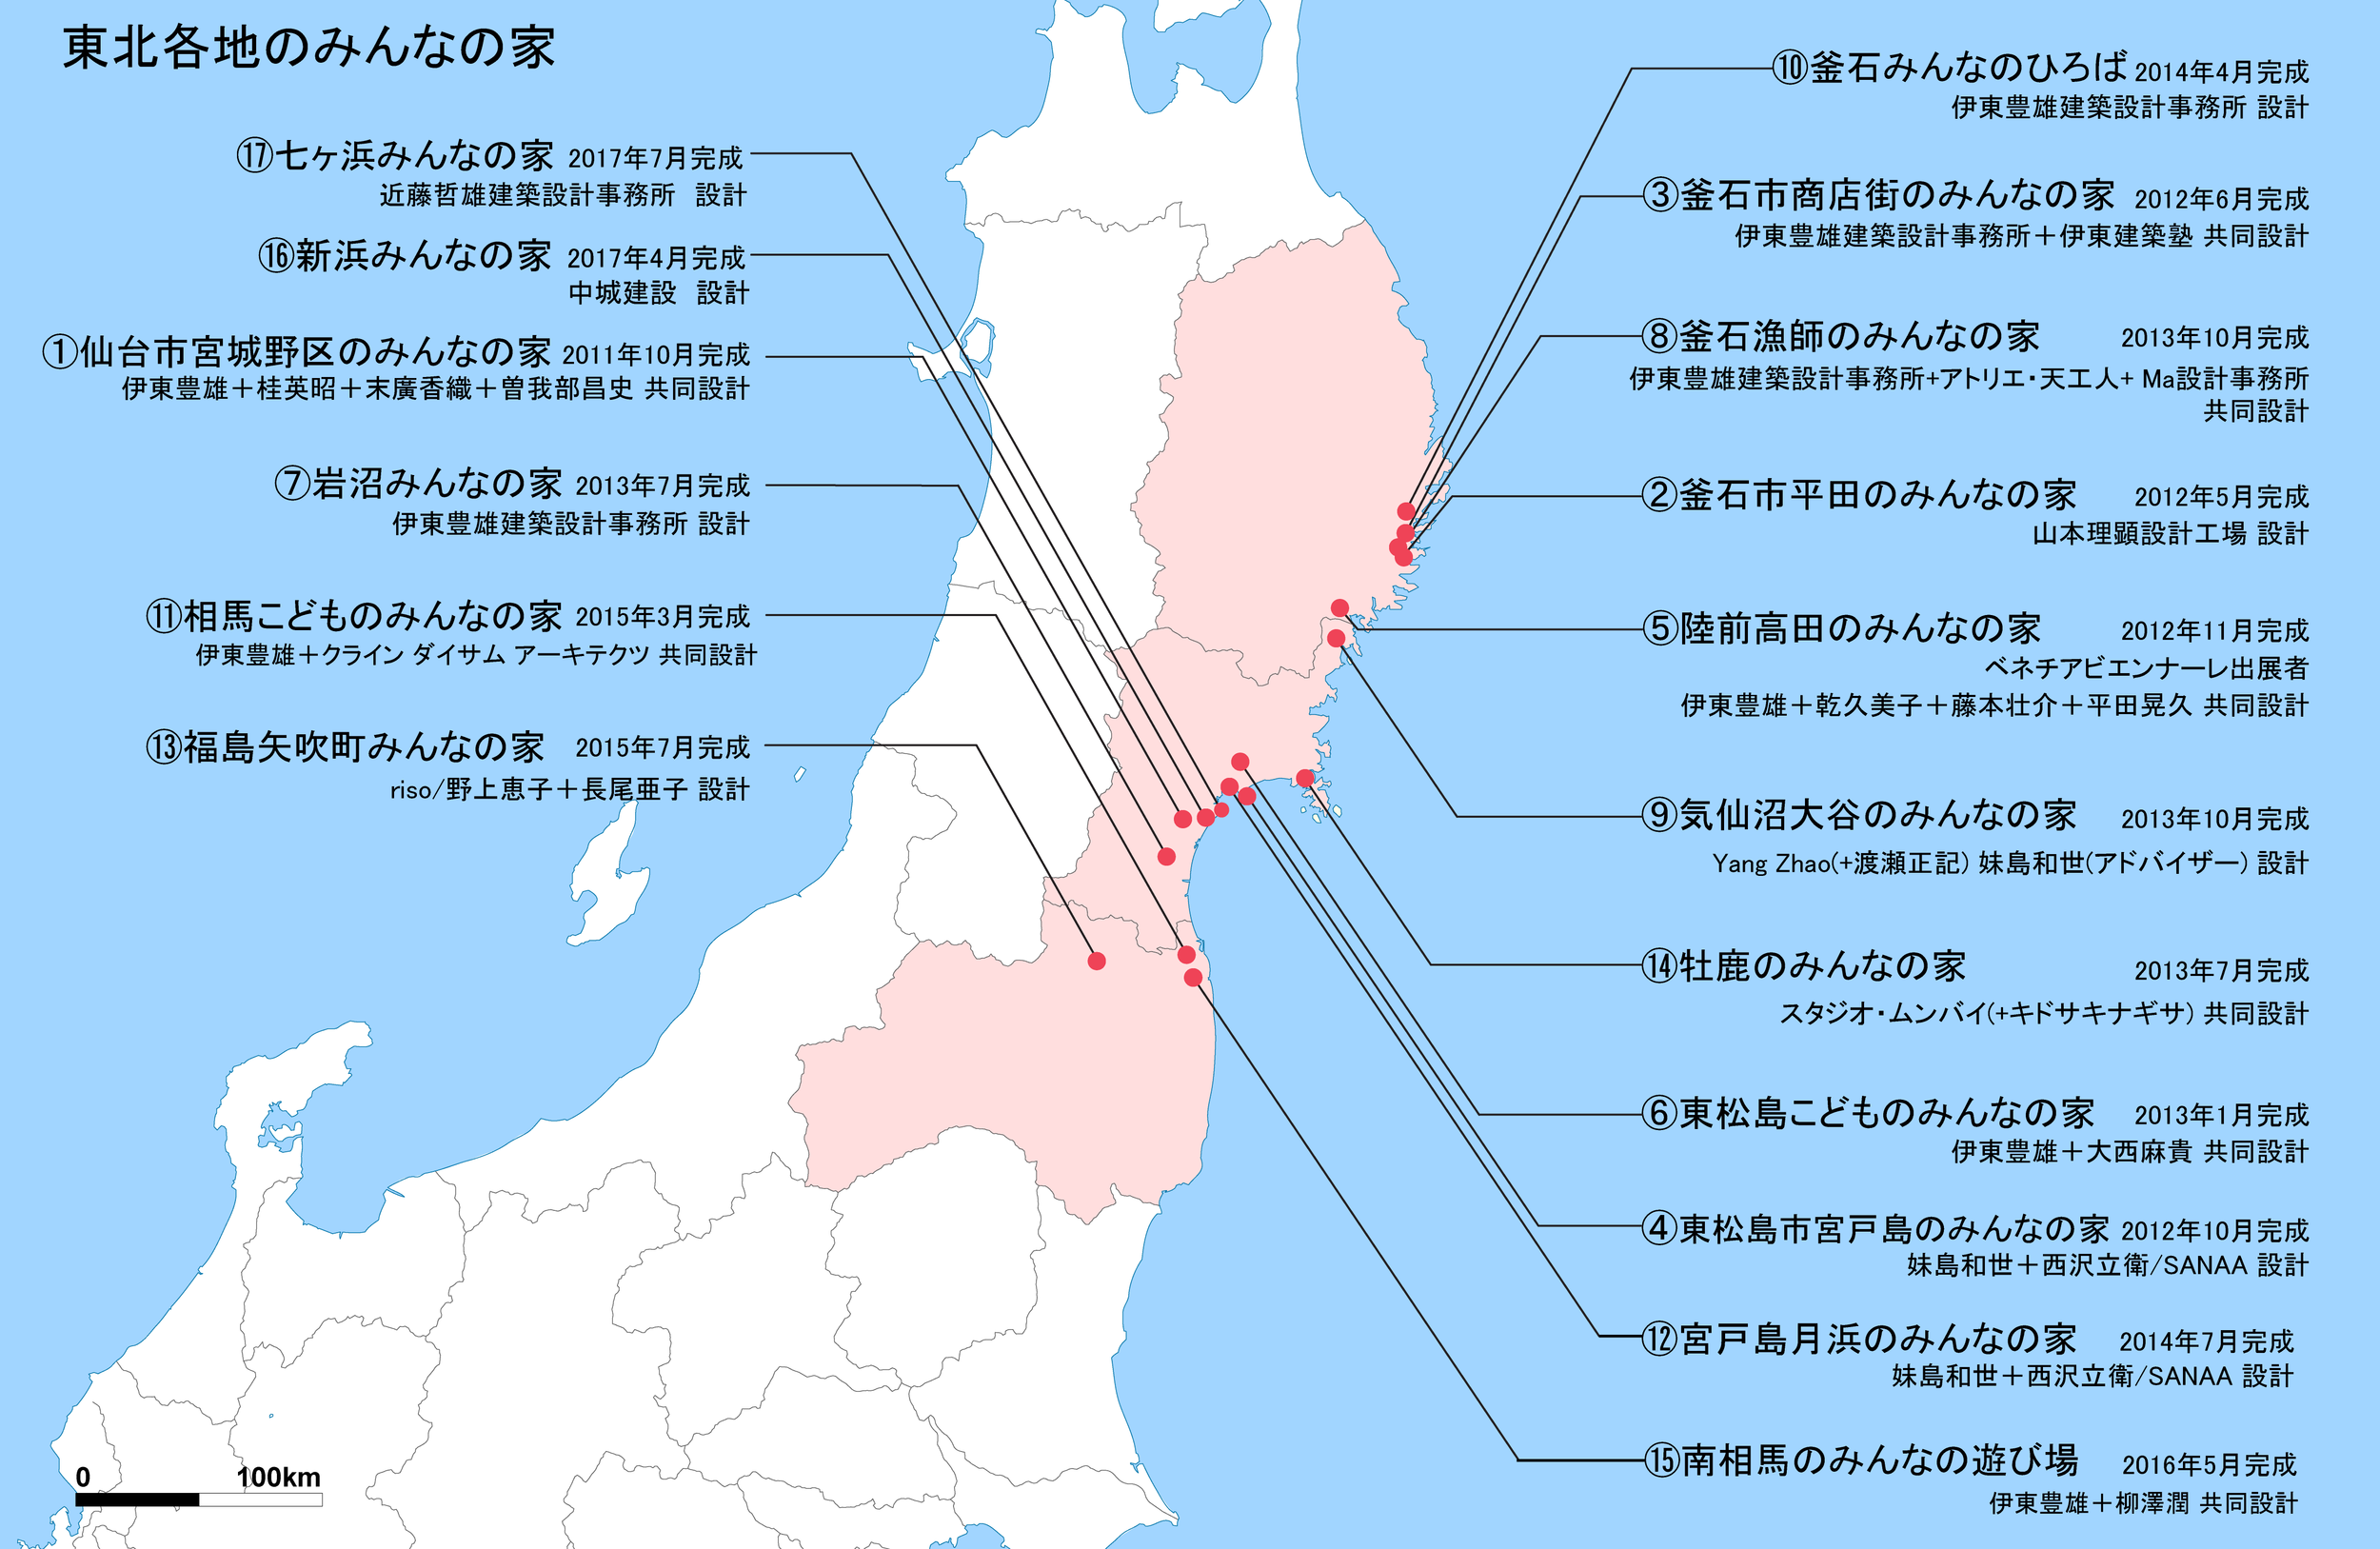 17 HOME-FOR-ALL projects have been built in the Tohoku area